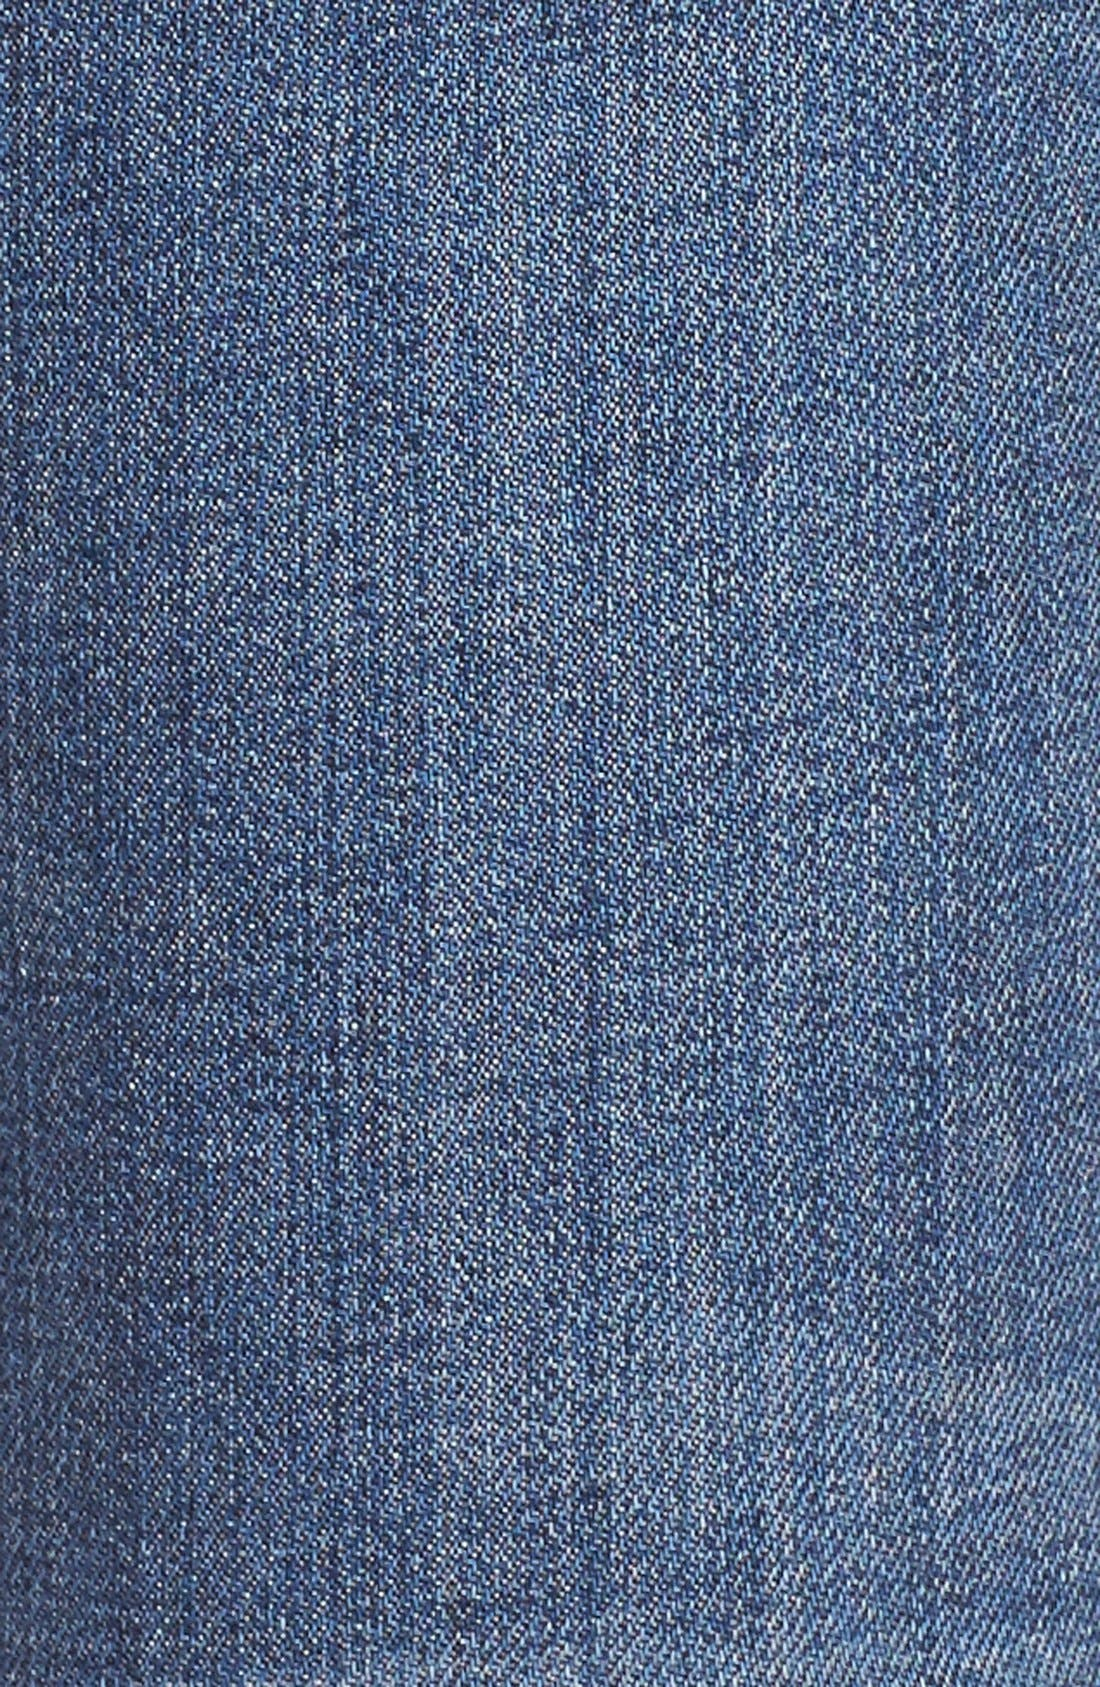 'Collector's - Blondie' Destroyed Ankle Skinny Jeans,                             Alternate thumbnail 5, color,                             410